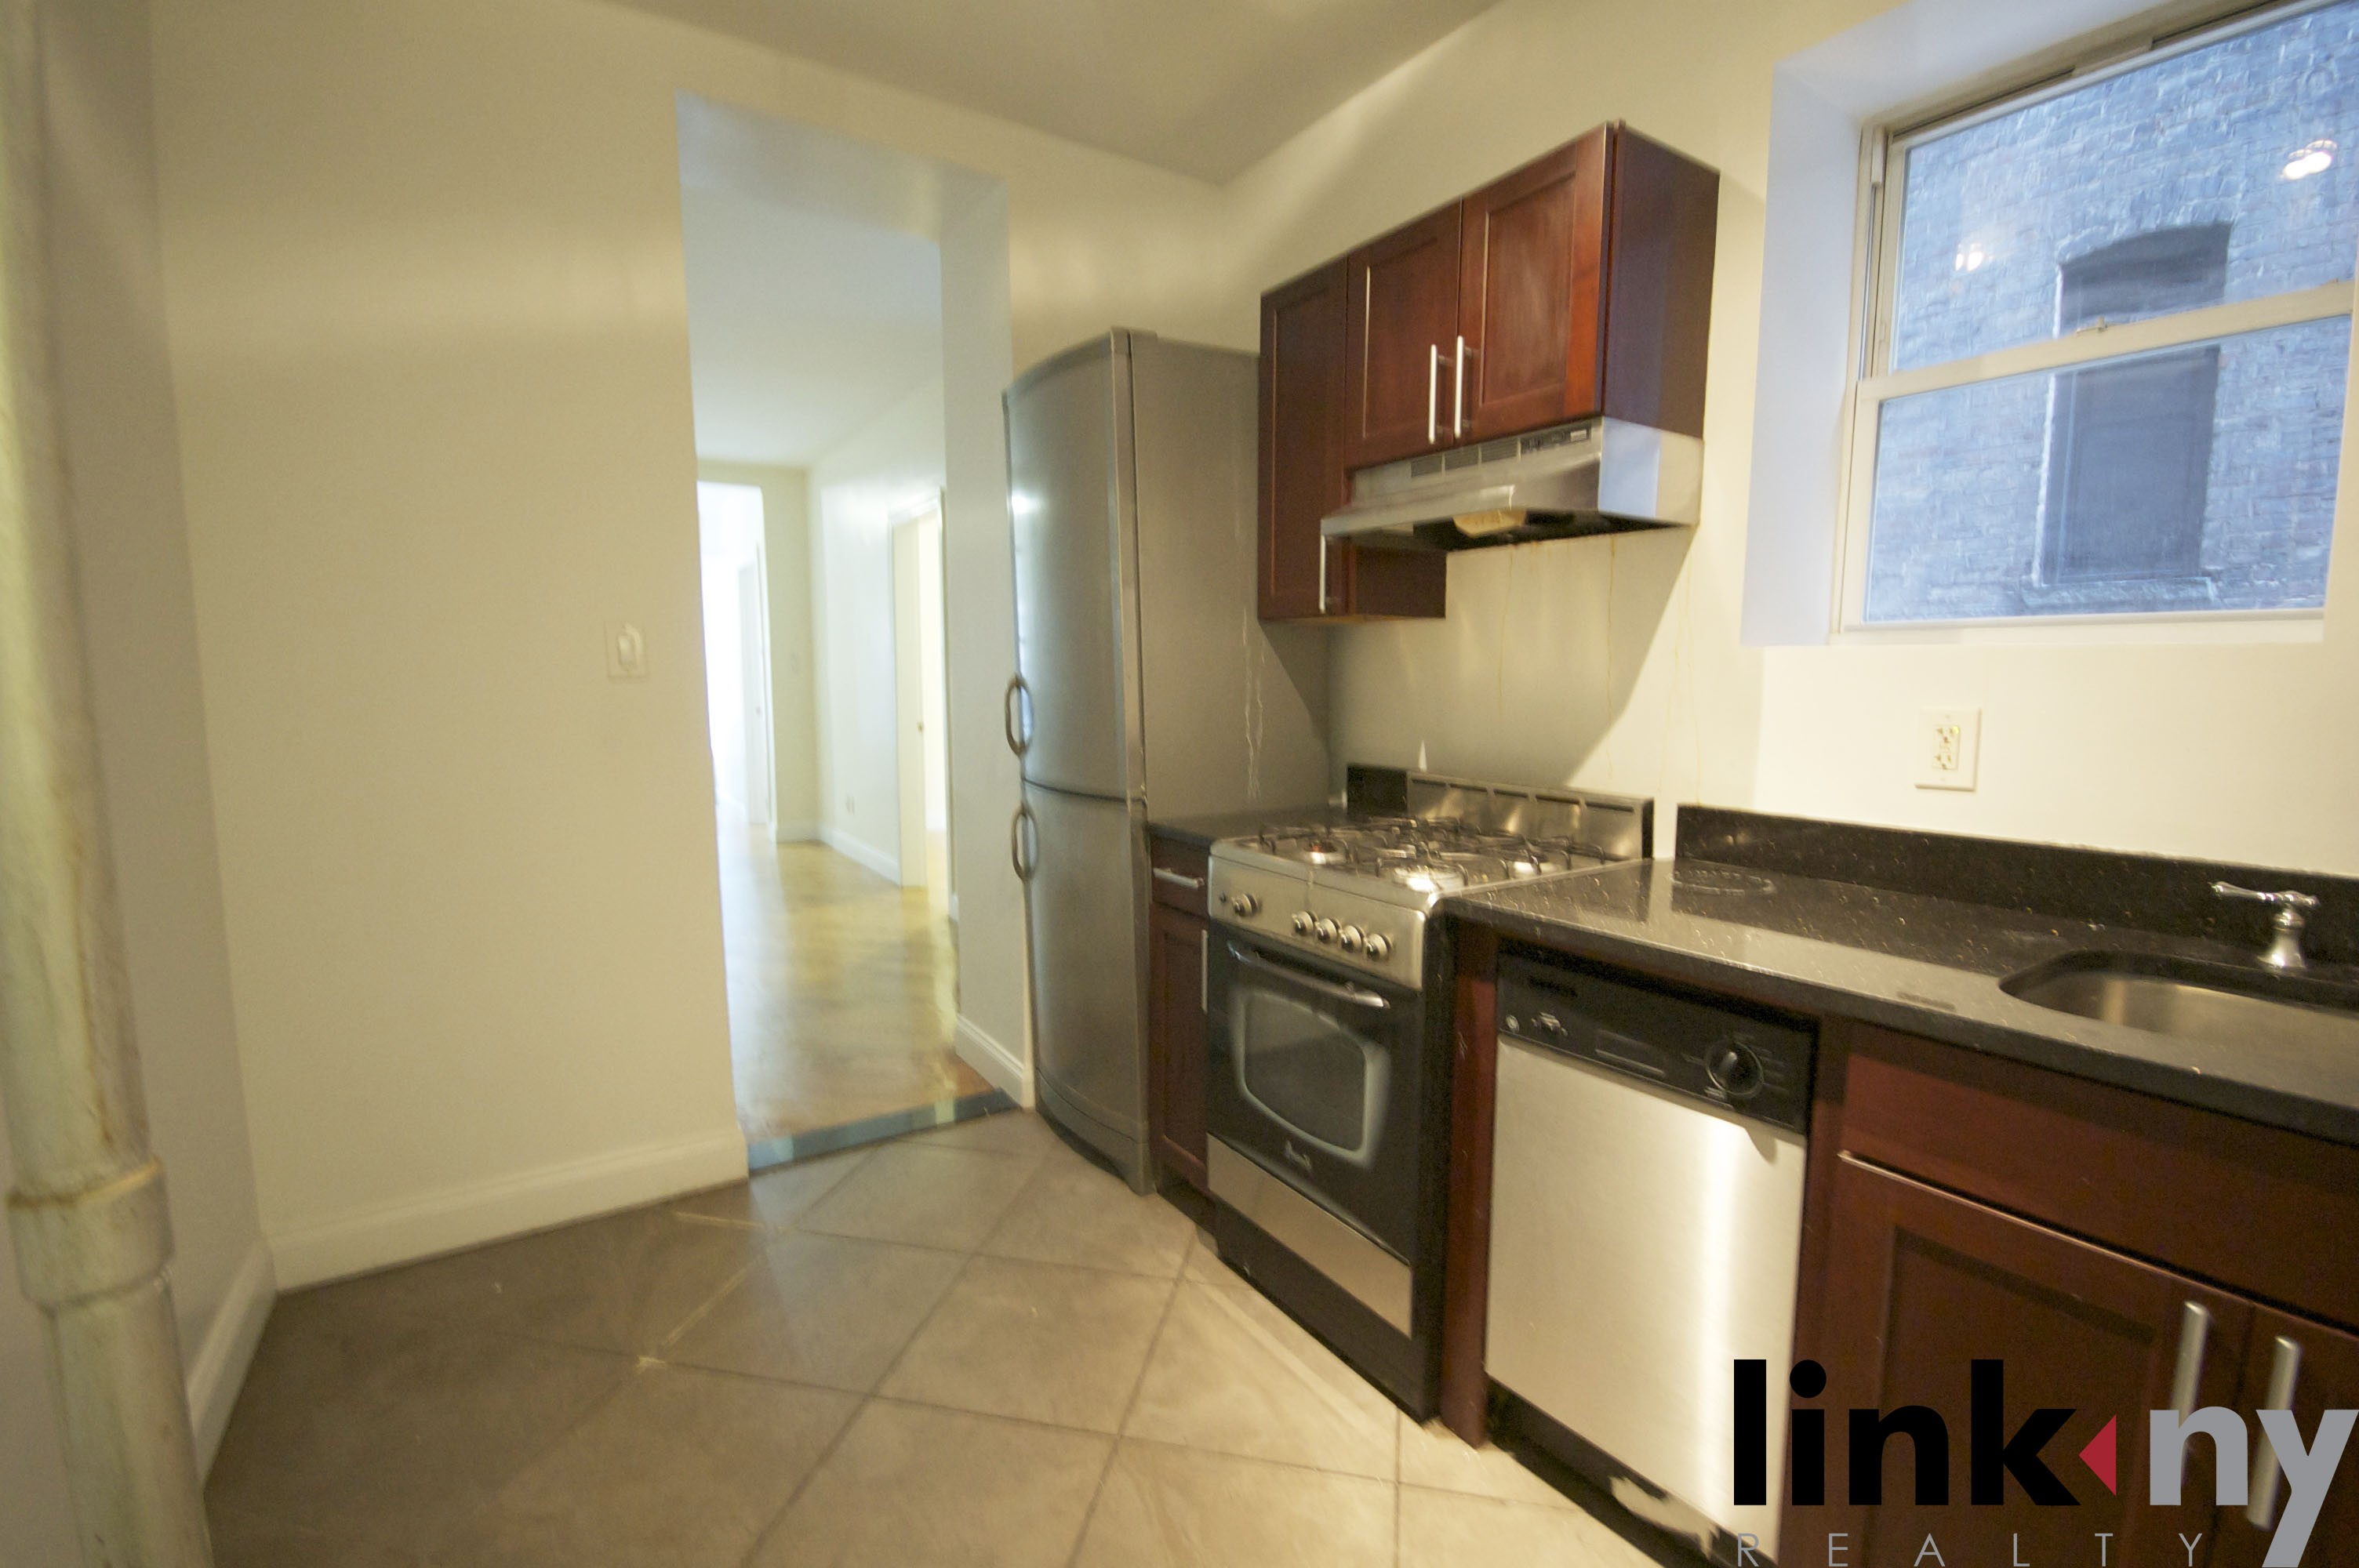 503 west 122nd street 1 new york ny 10027 3 bedroom - Three bedroom apartments for rent nyc ...